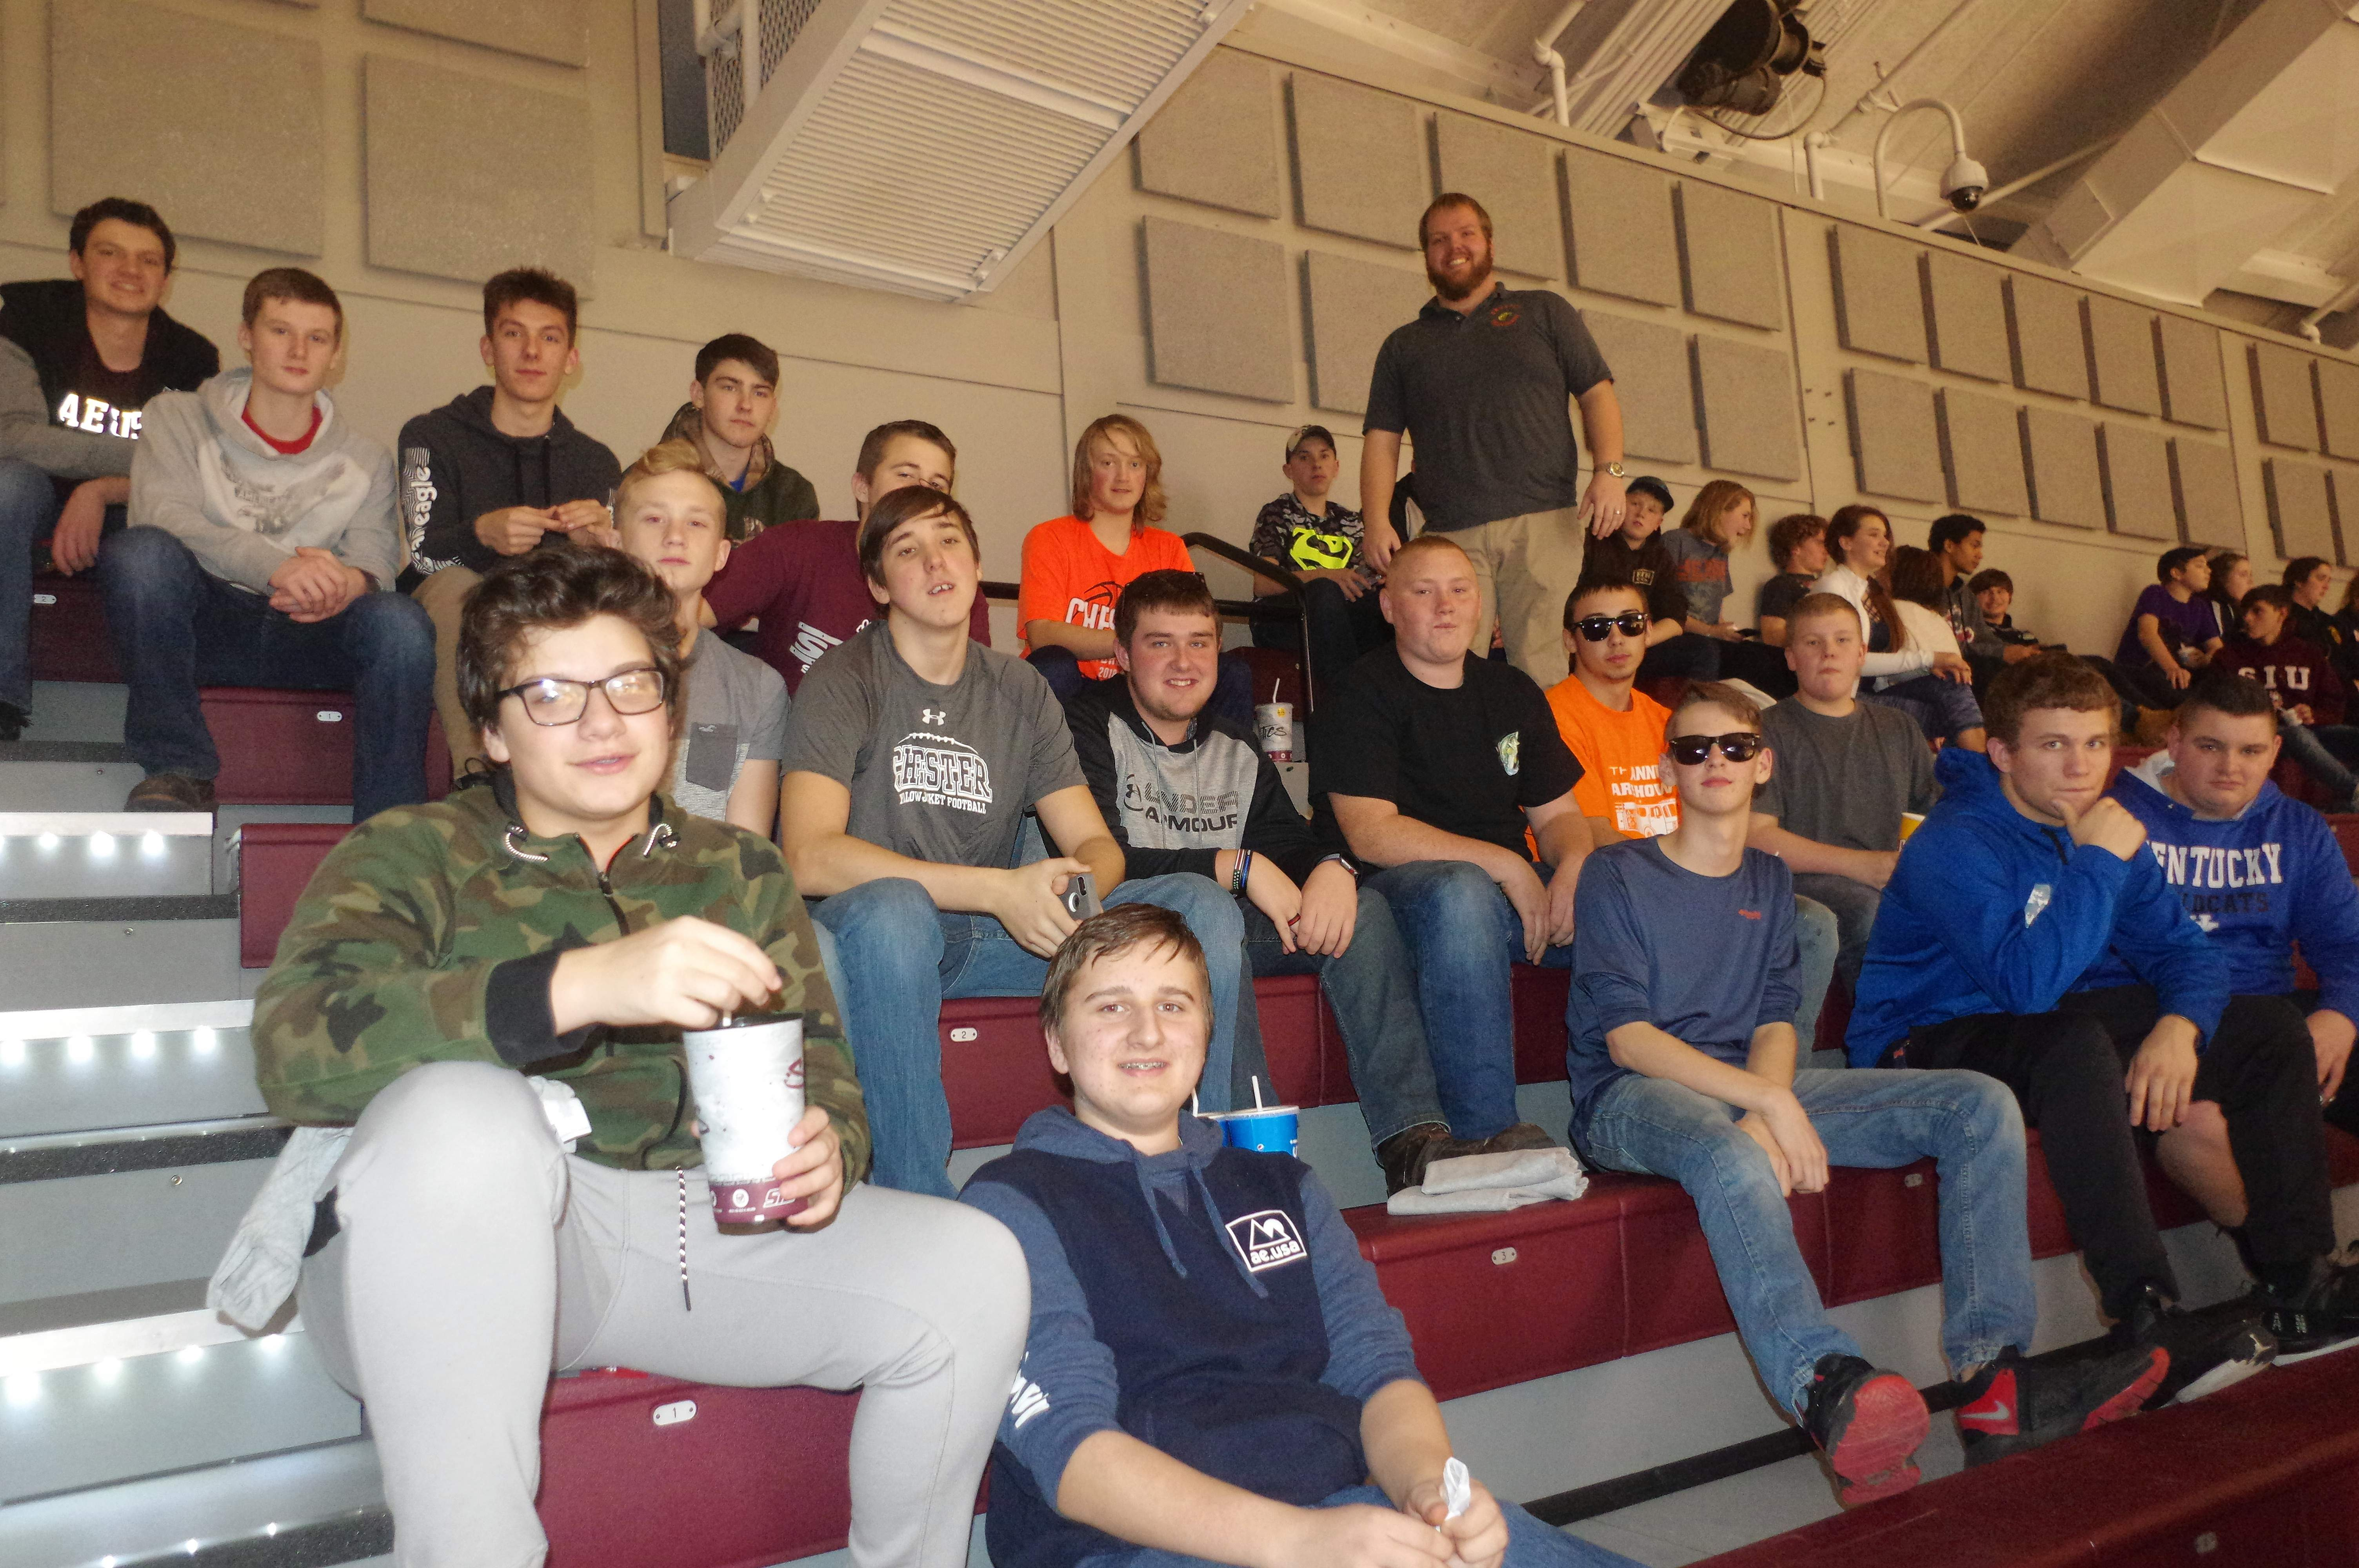 CHS agriculture teacher, Matthew Meltzer (standing, back right), brought about 30 Chester agriculture students to Ag Night at SIU.